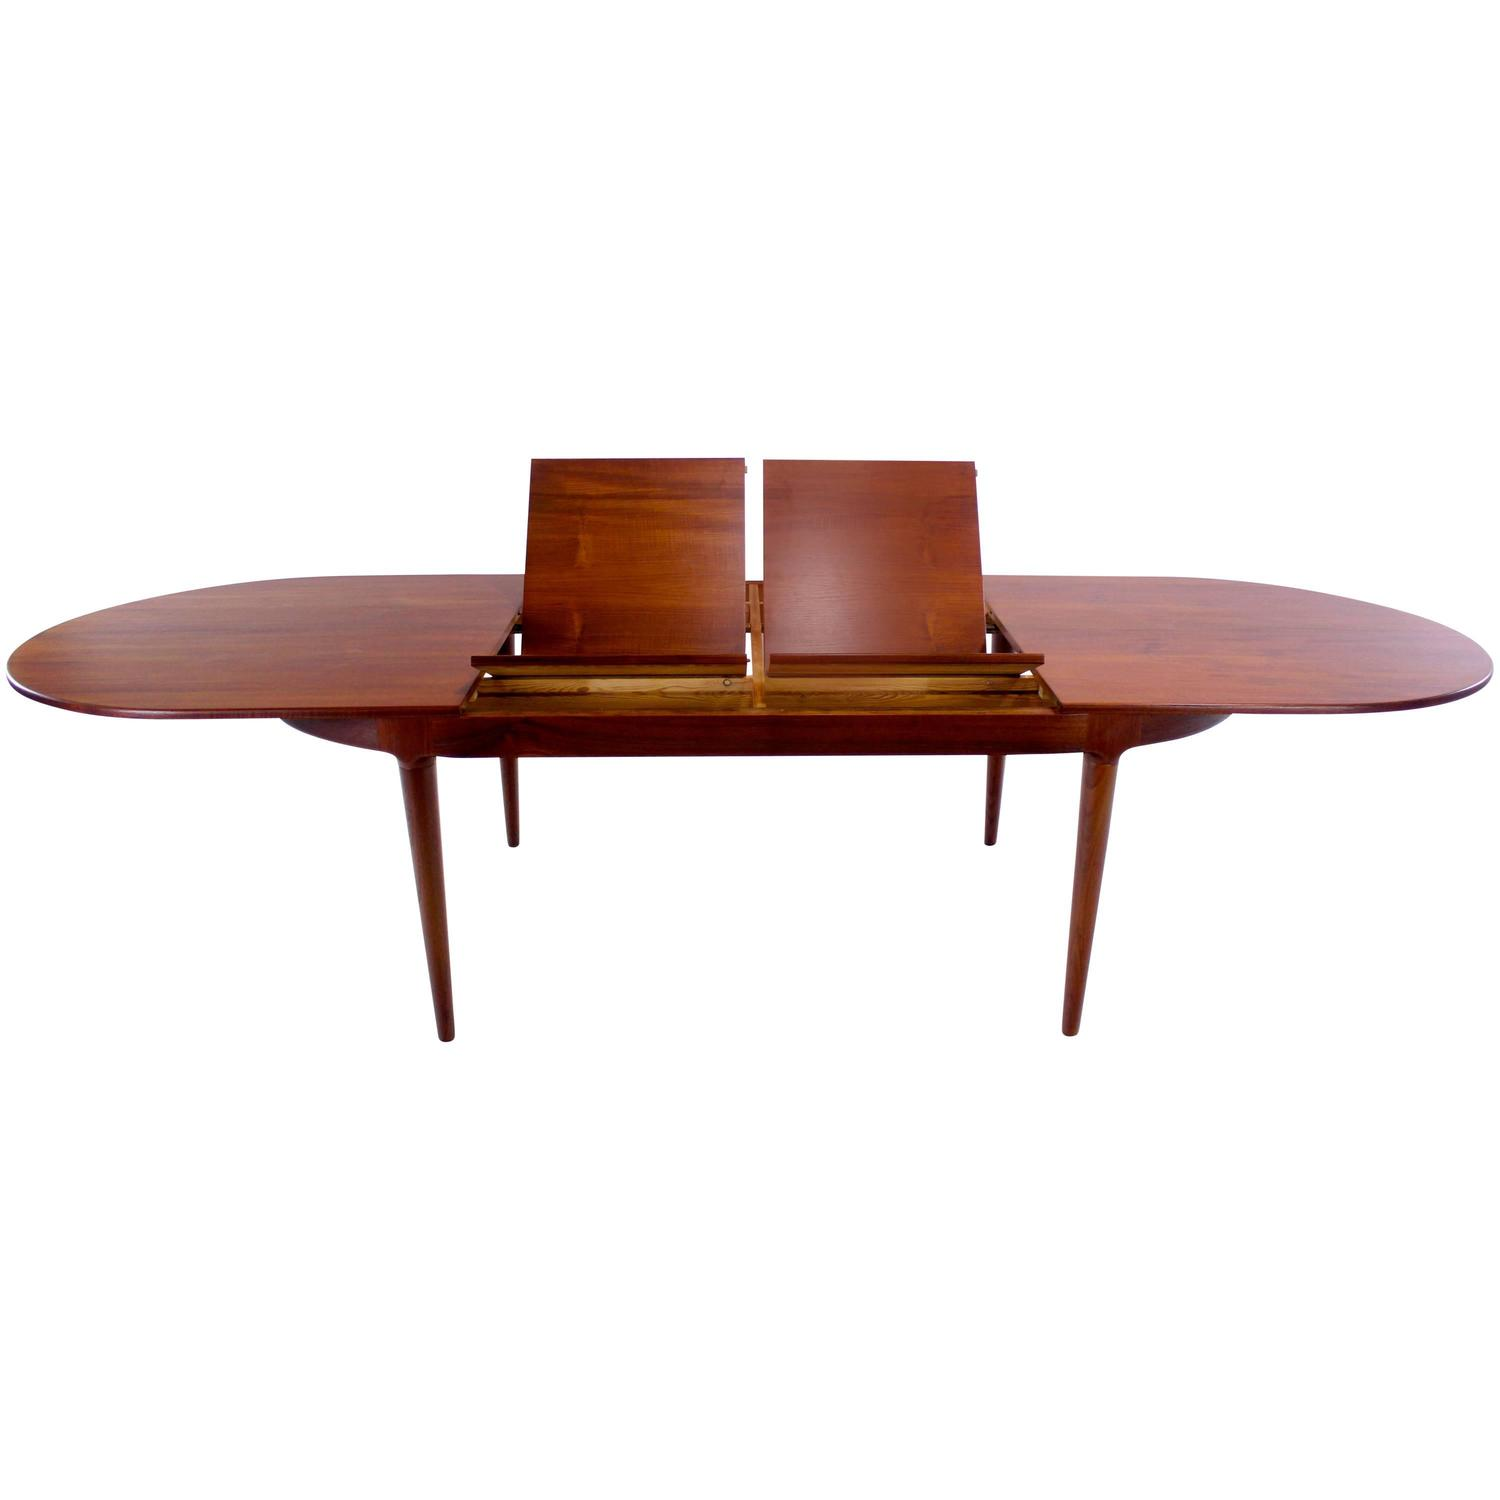 Danish modern oval butterfly leaf teak dining table by arne hovmand olsen for sale at 1stdibs - Refinish contemporary dining room tables ...